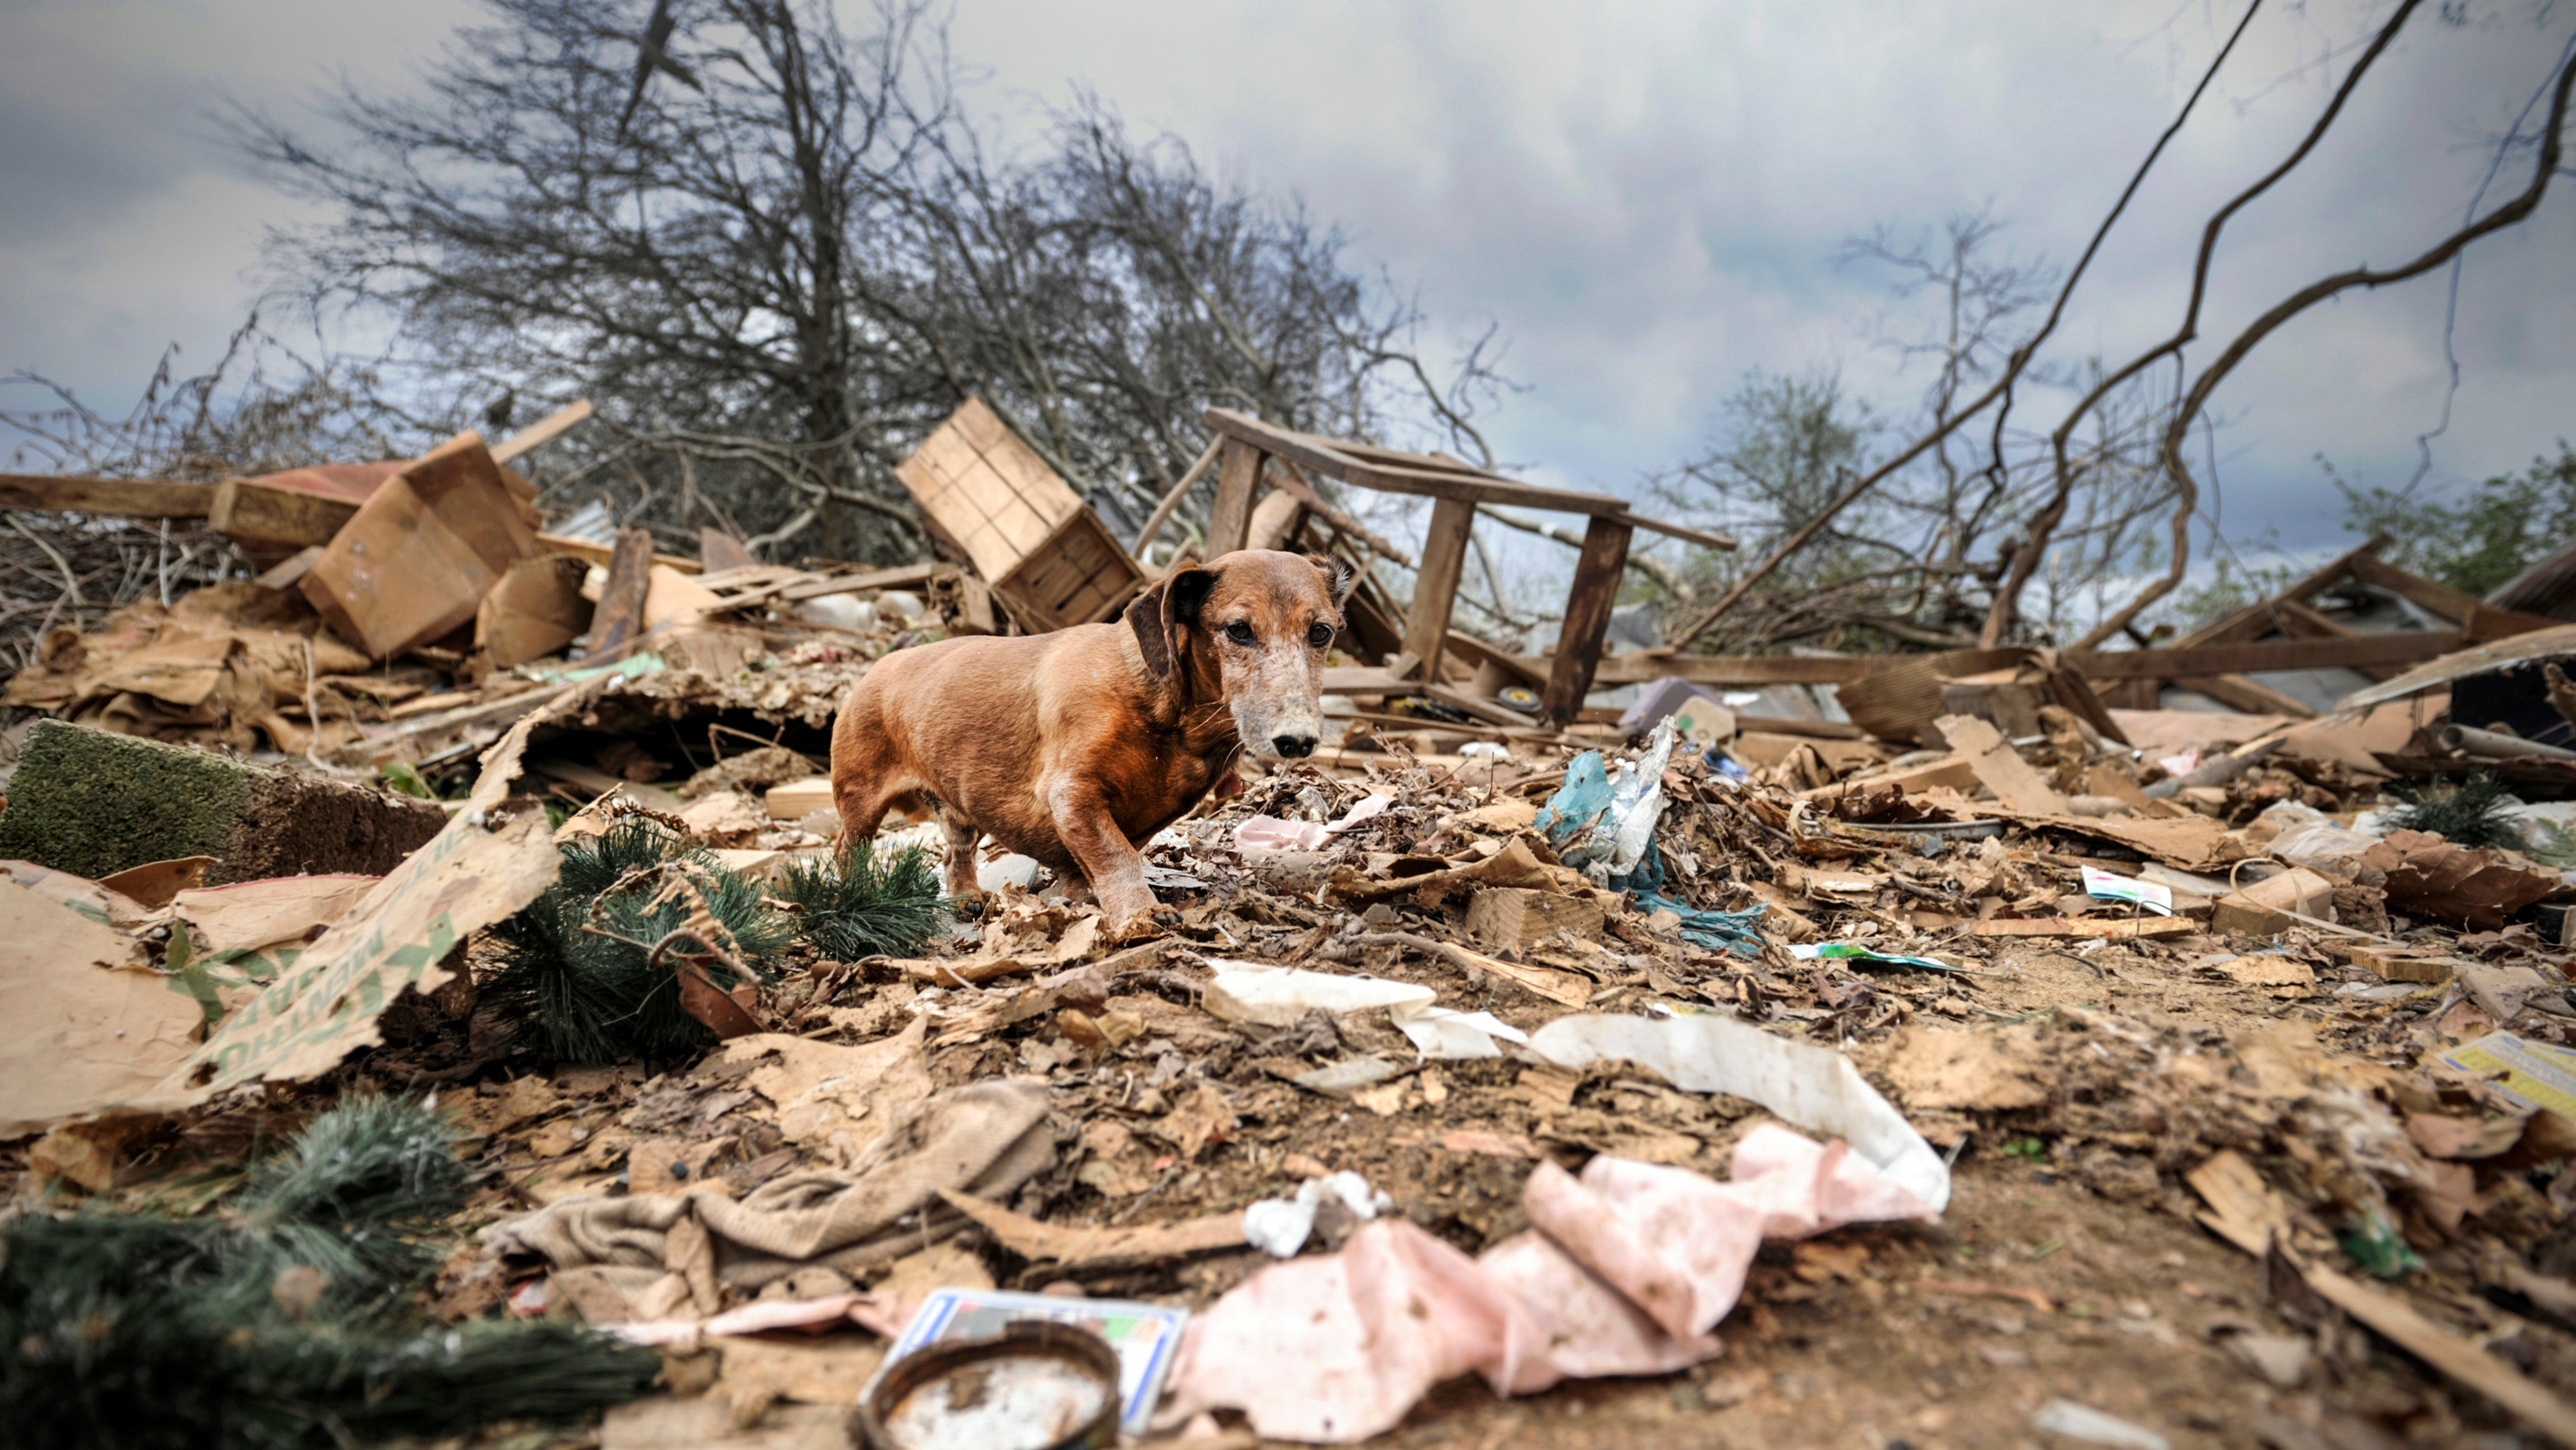 Photos: Severe Storms, Tornadoes Leave Widespread Damage in US South